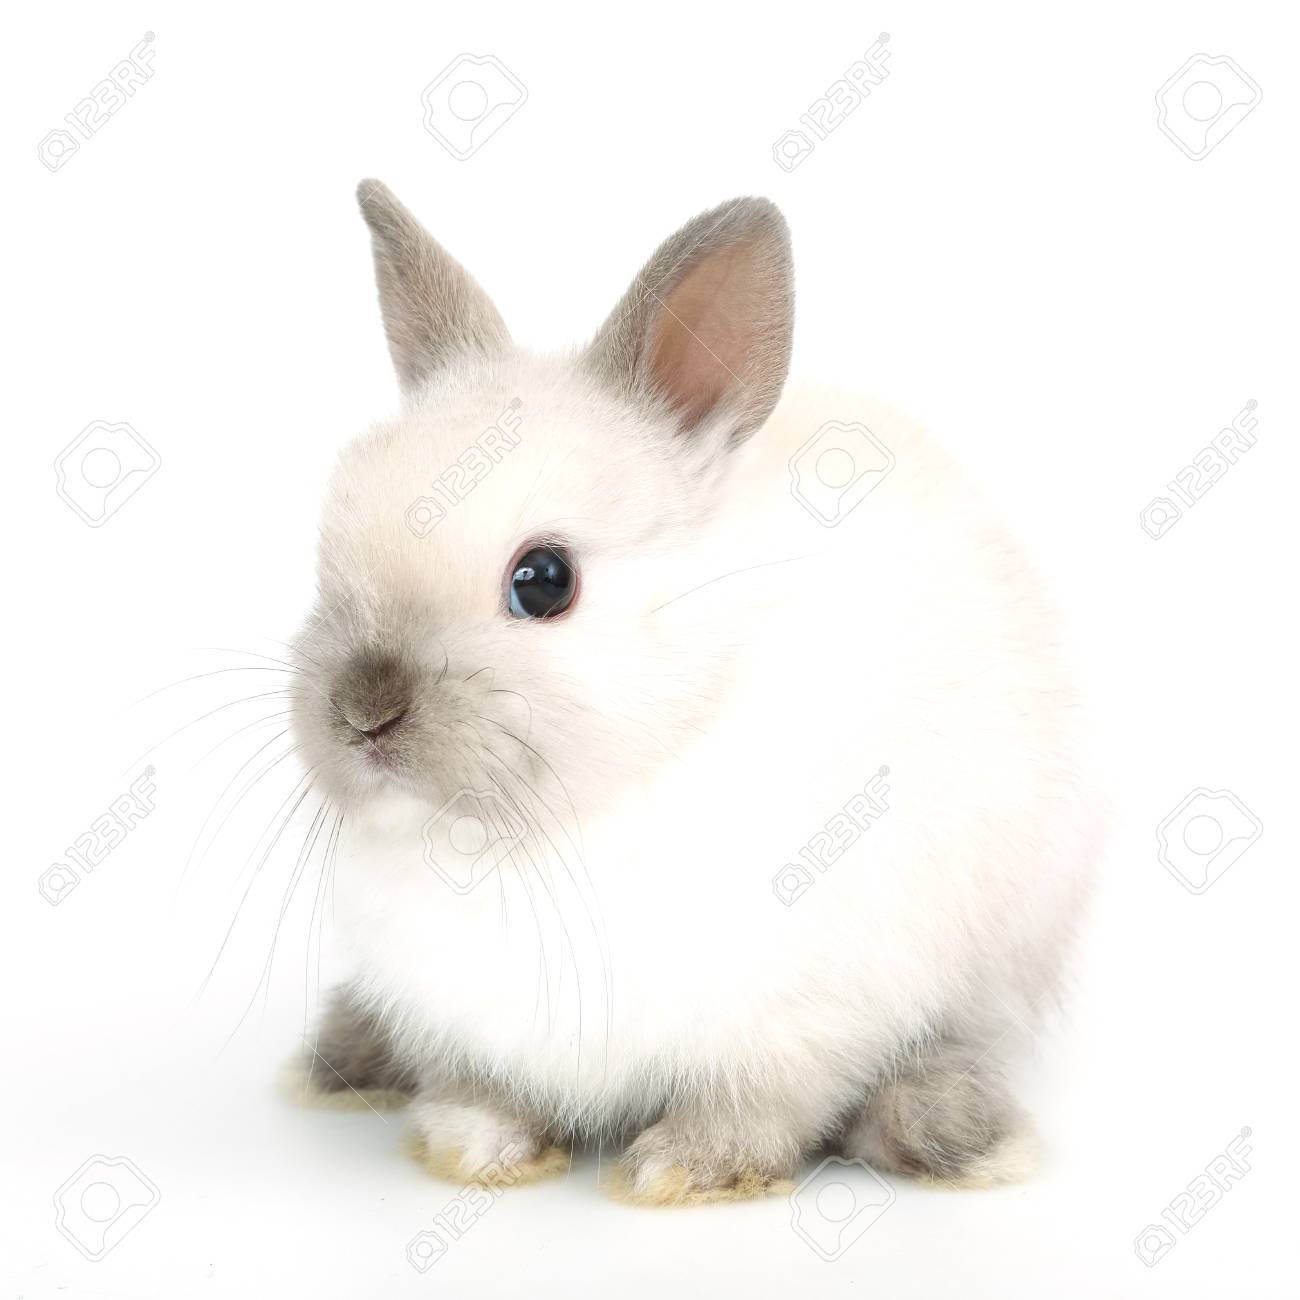 Image of: Feed Cute White Baby Bunny Rabbit On The White Background Stock Photo 91262872 123rfcom Cute White Baby Bunny Rabbit On The White Background Stock Photo